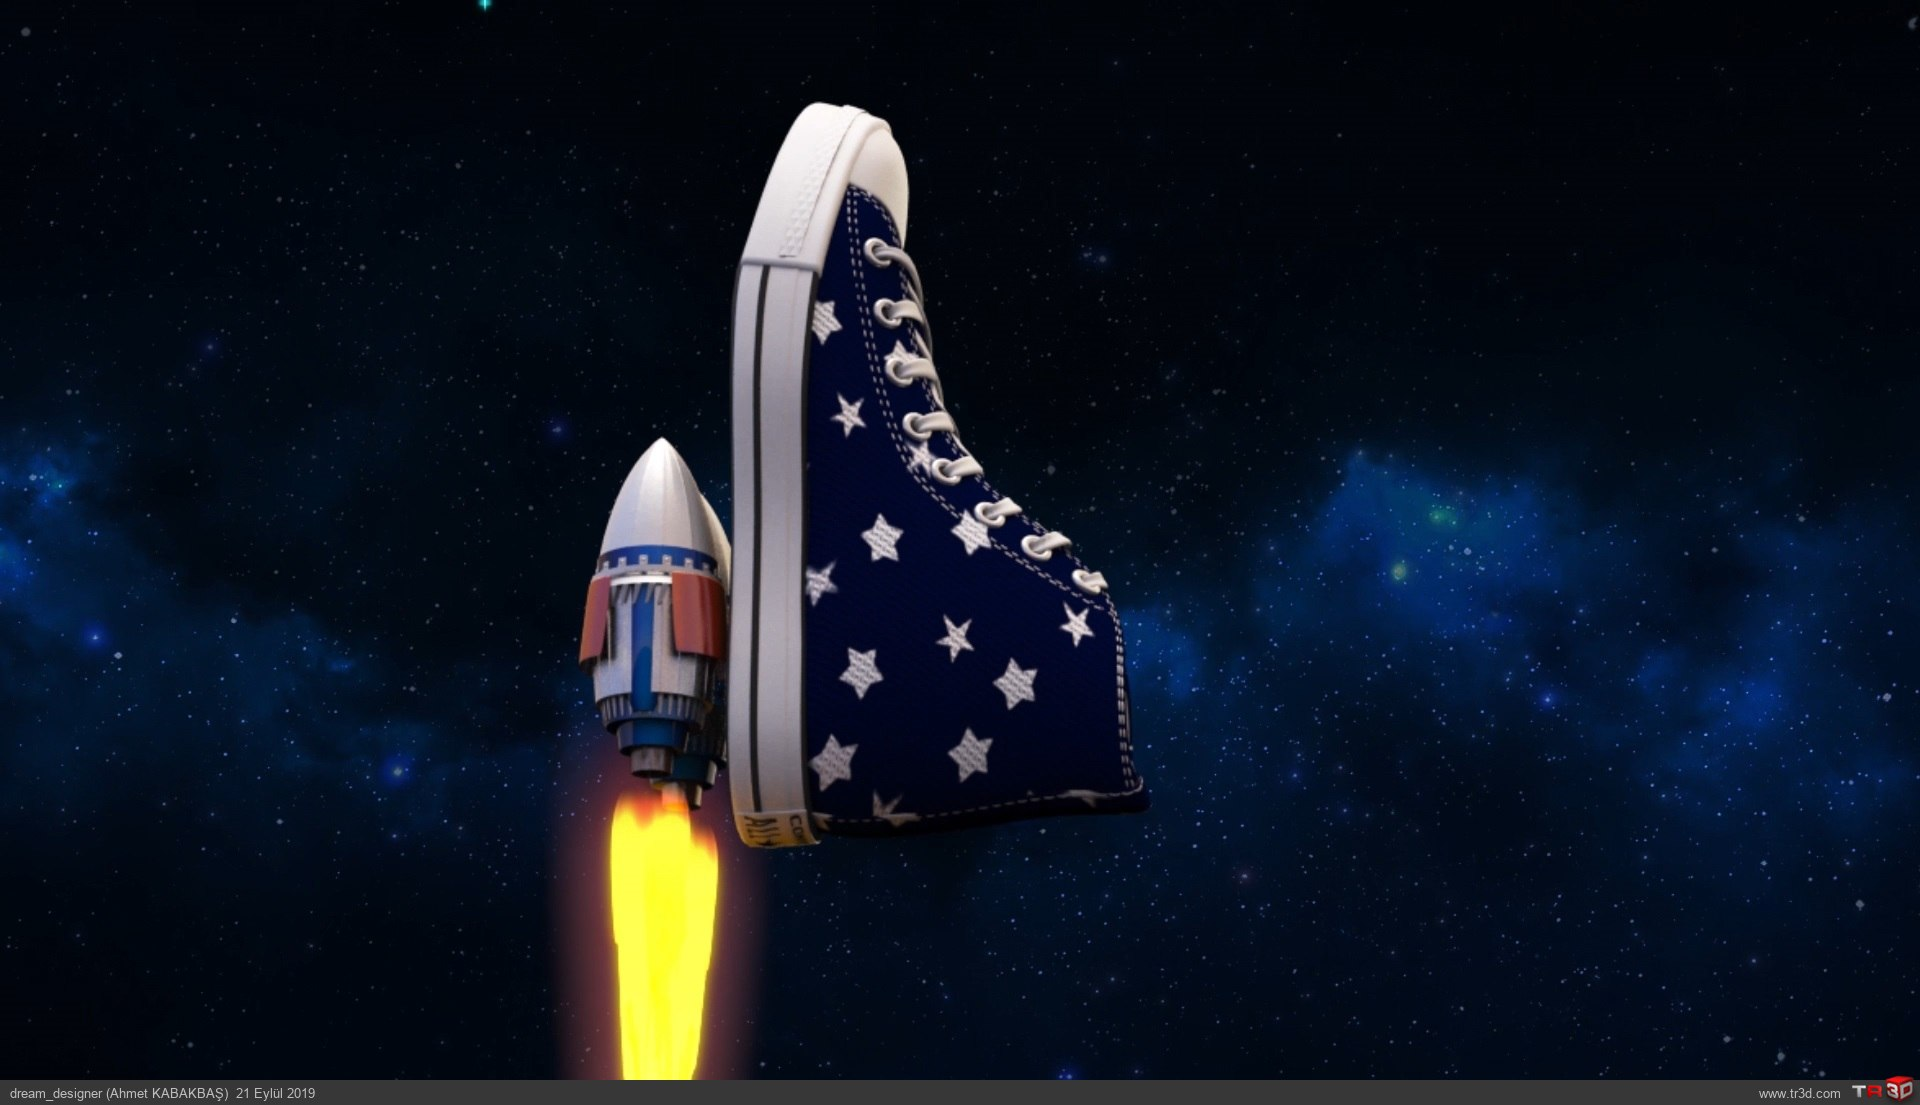 Converse - Design Your Own 2